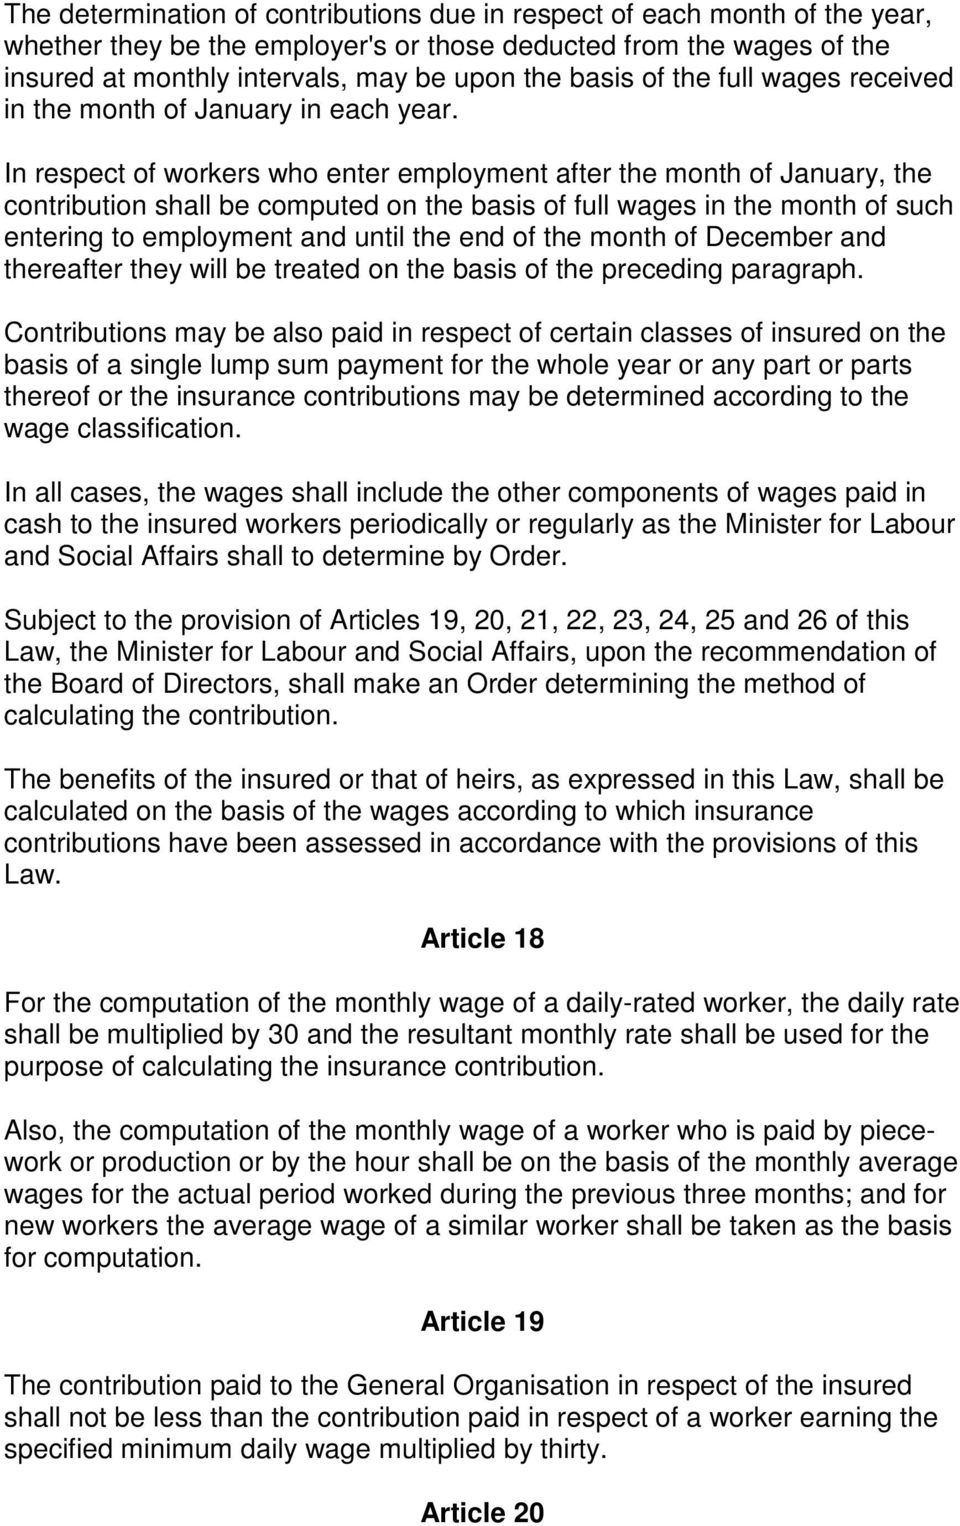 In respect of workers who enter employment after the month of January, the contribution shall be computed on the basis of full wages in the month of such entering to employment and until the end of